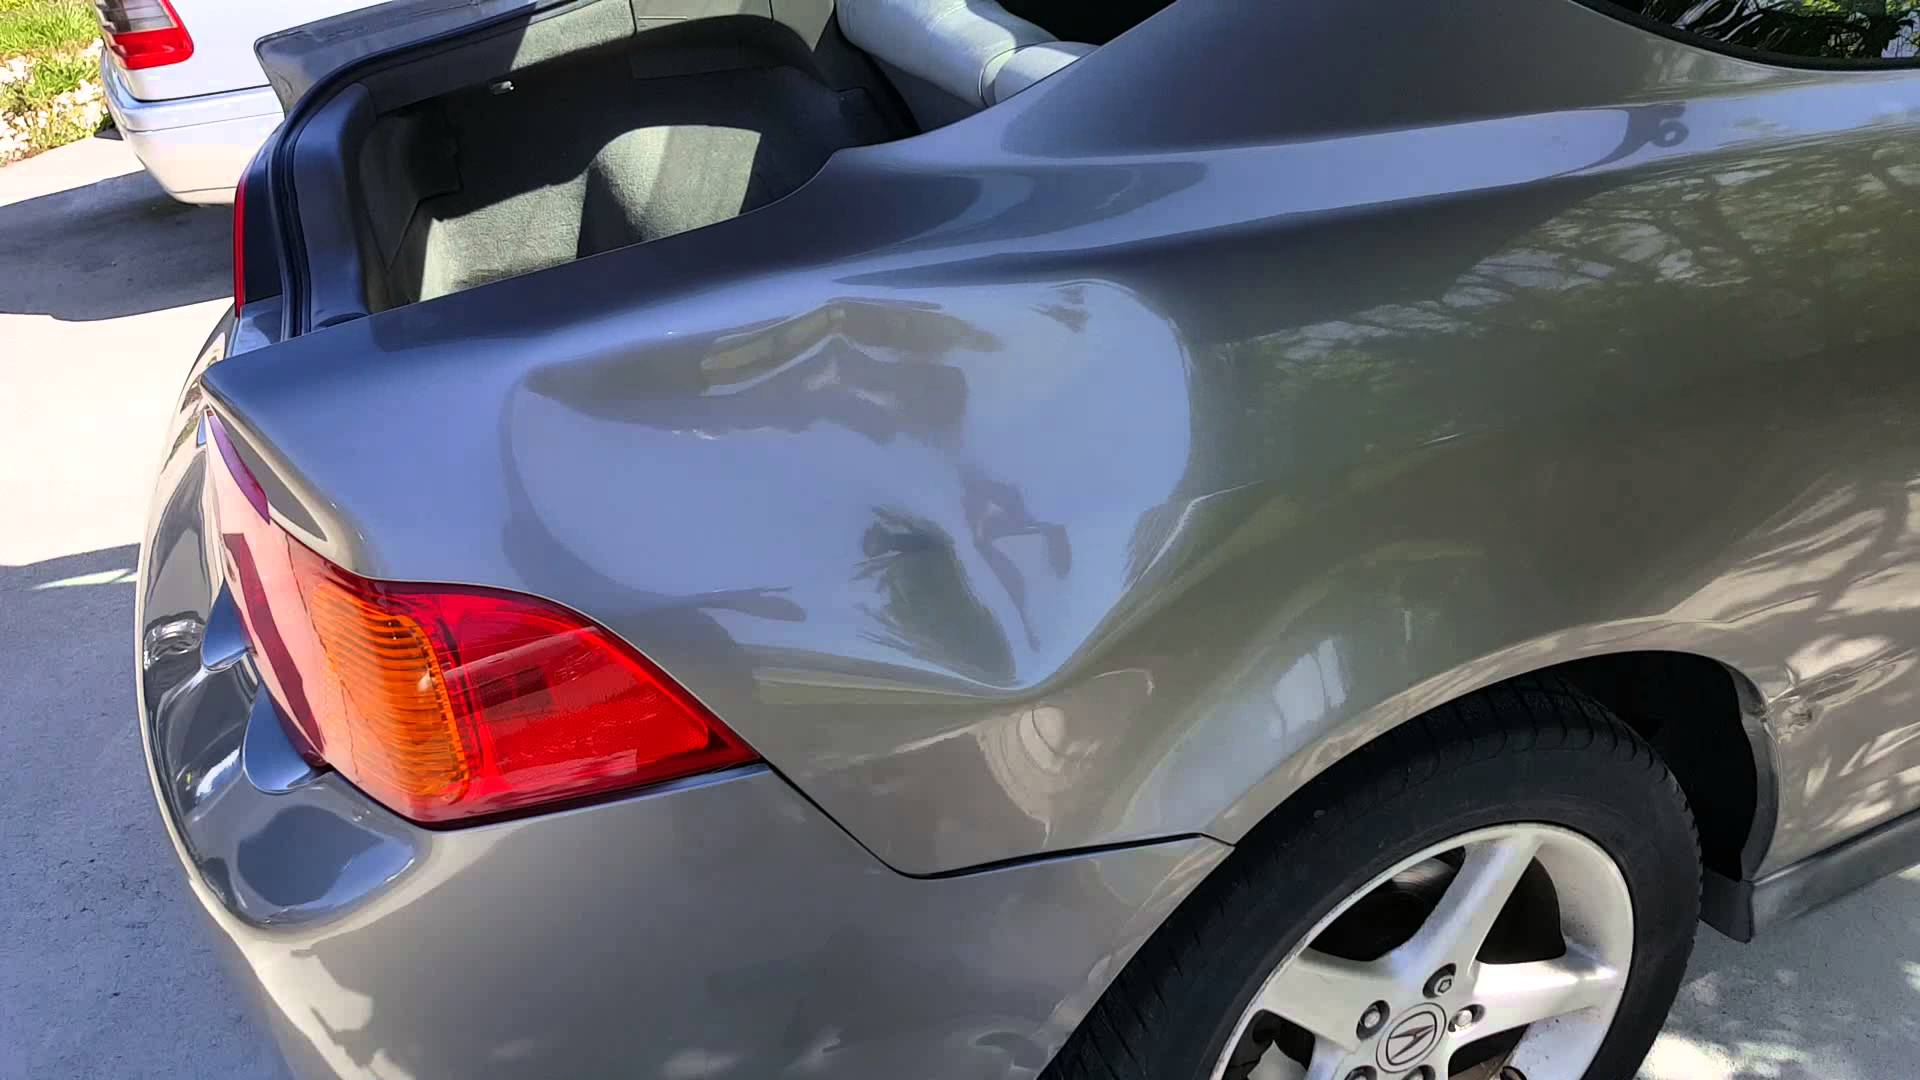 Vallejo-napa big dent paintless dent repair…before